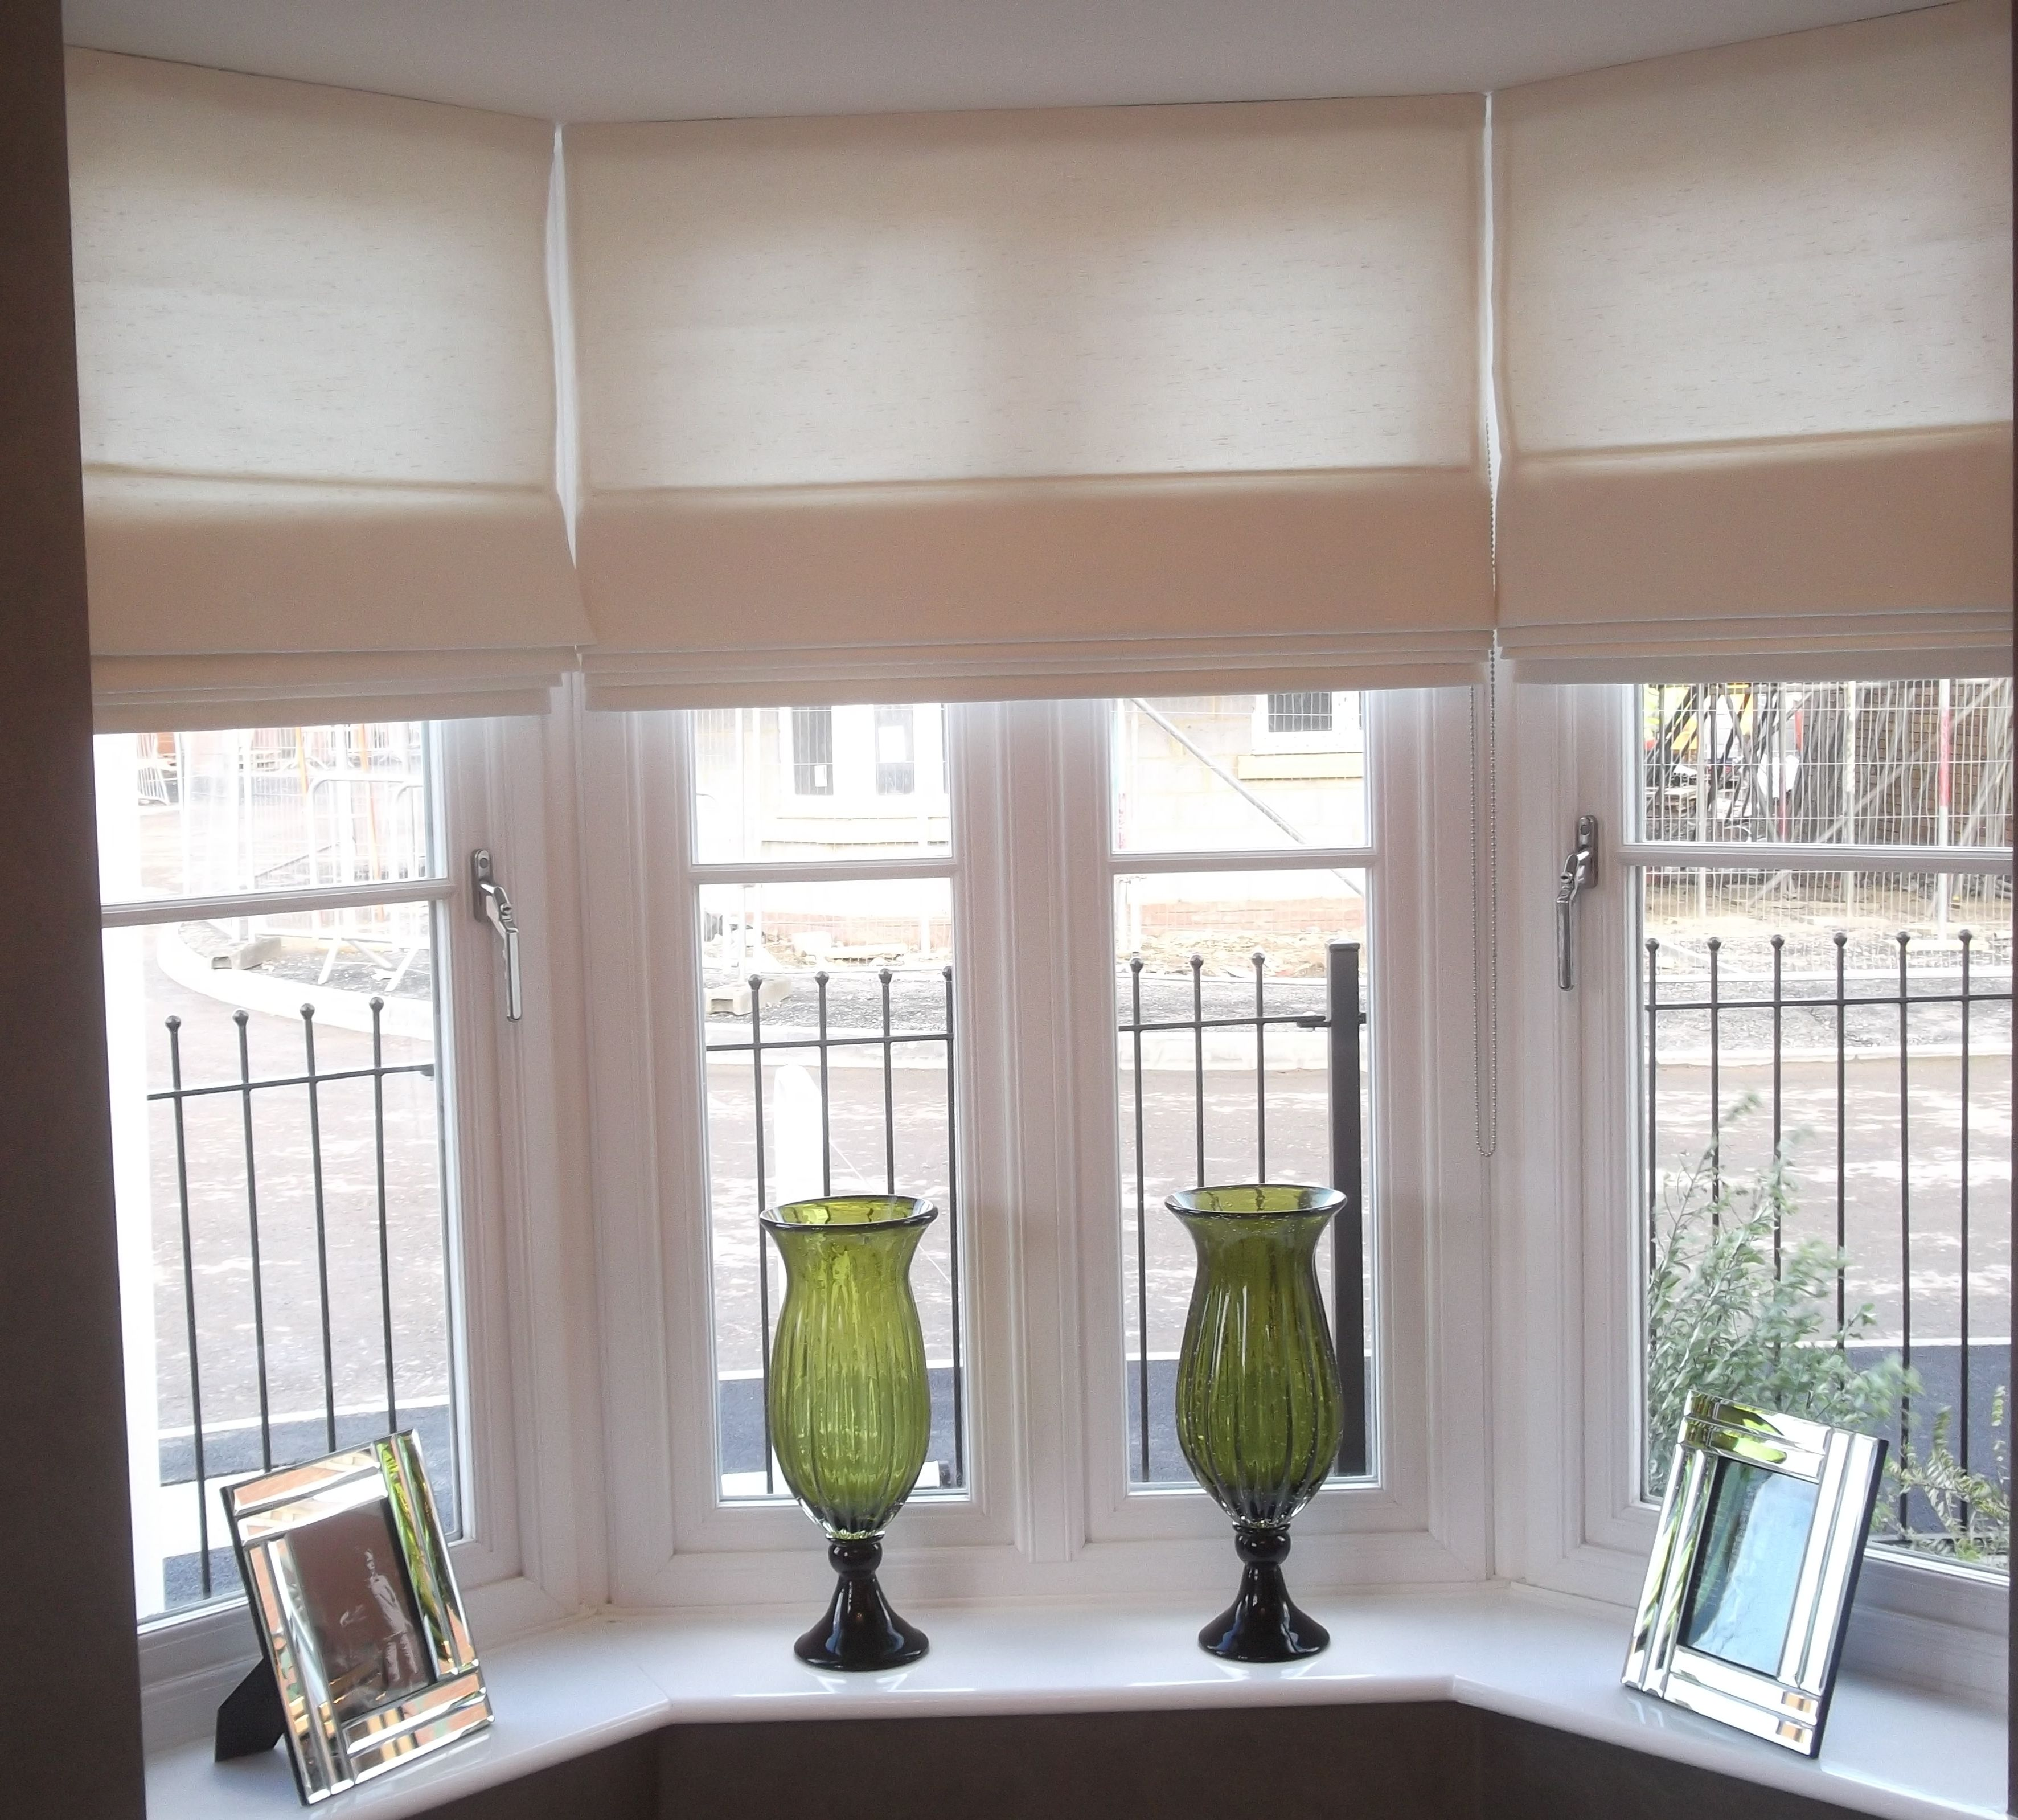 Charming Inexpensive Roman Shades For Kitchen Windows With Photo